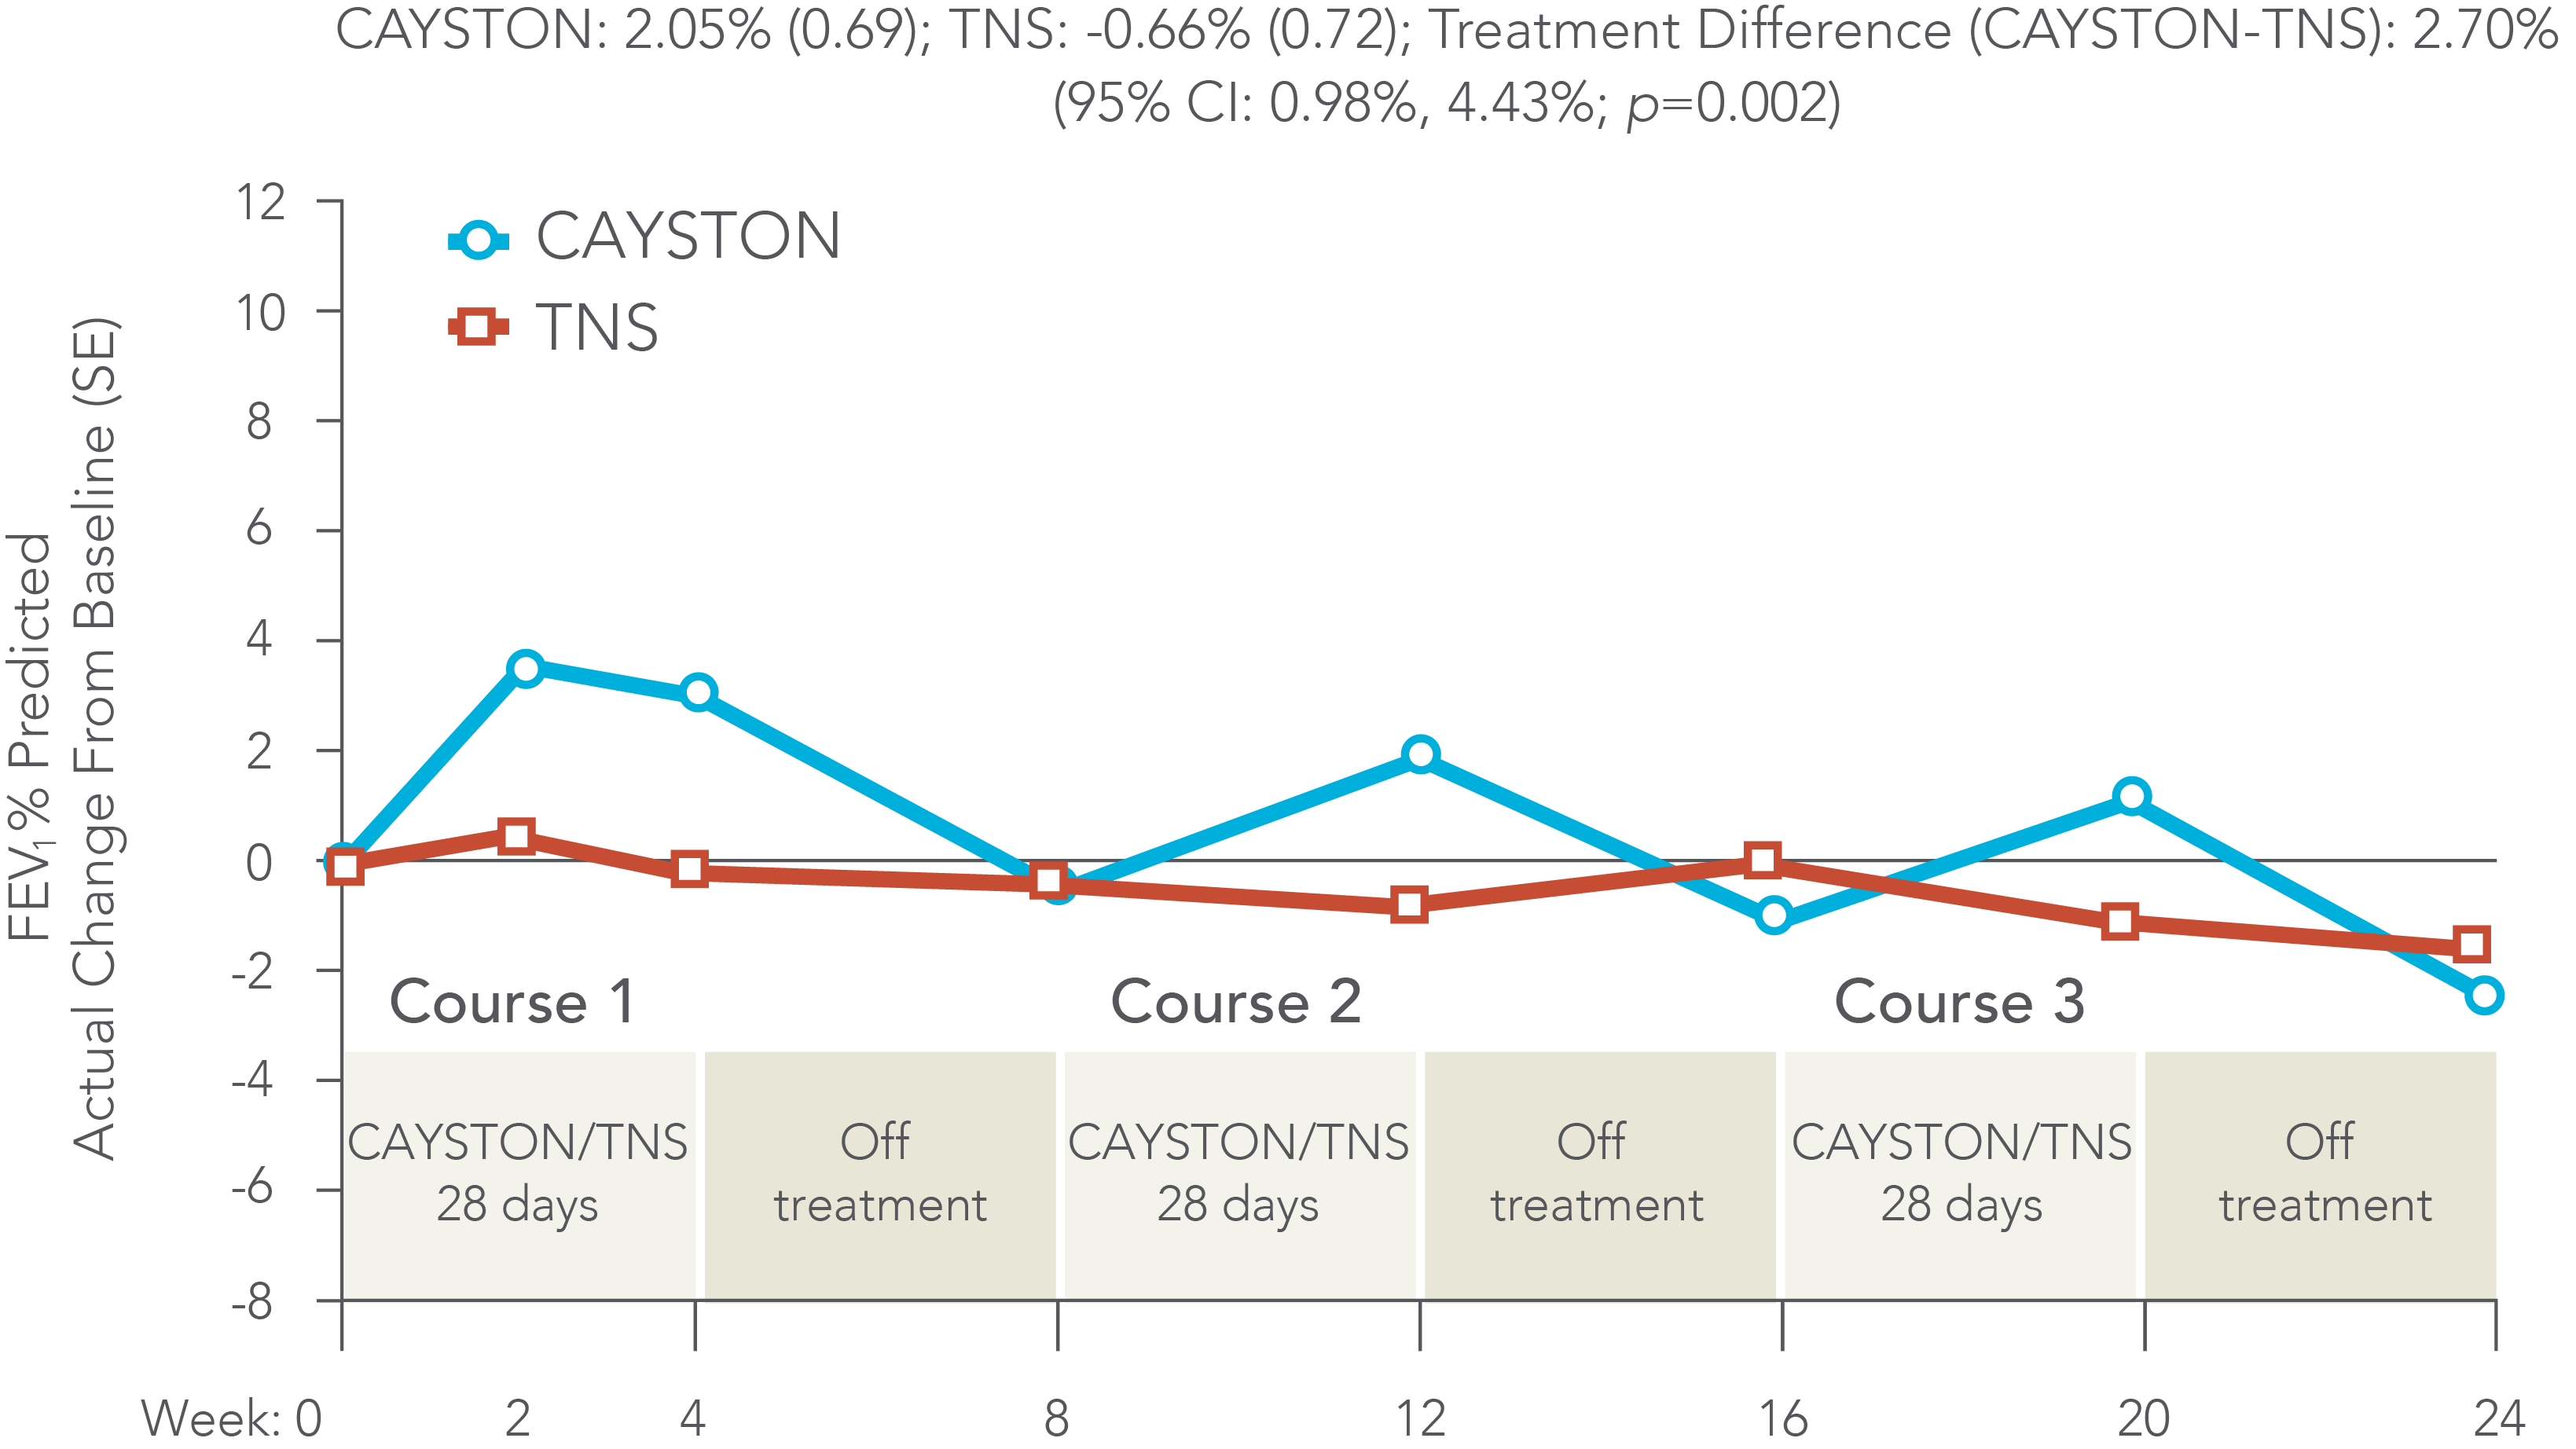 CAYSTON Superiority analysis: Adjusted mean actual change (SE) in FEV% across 3 treatment cycles